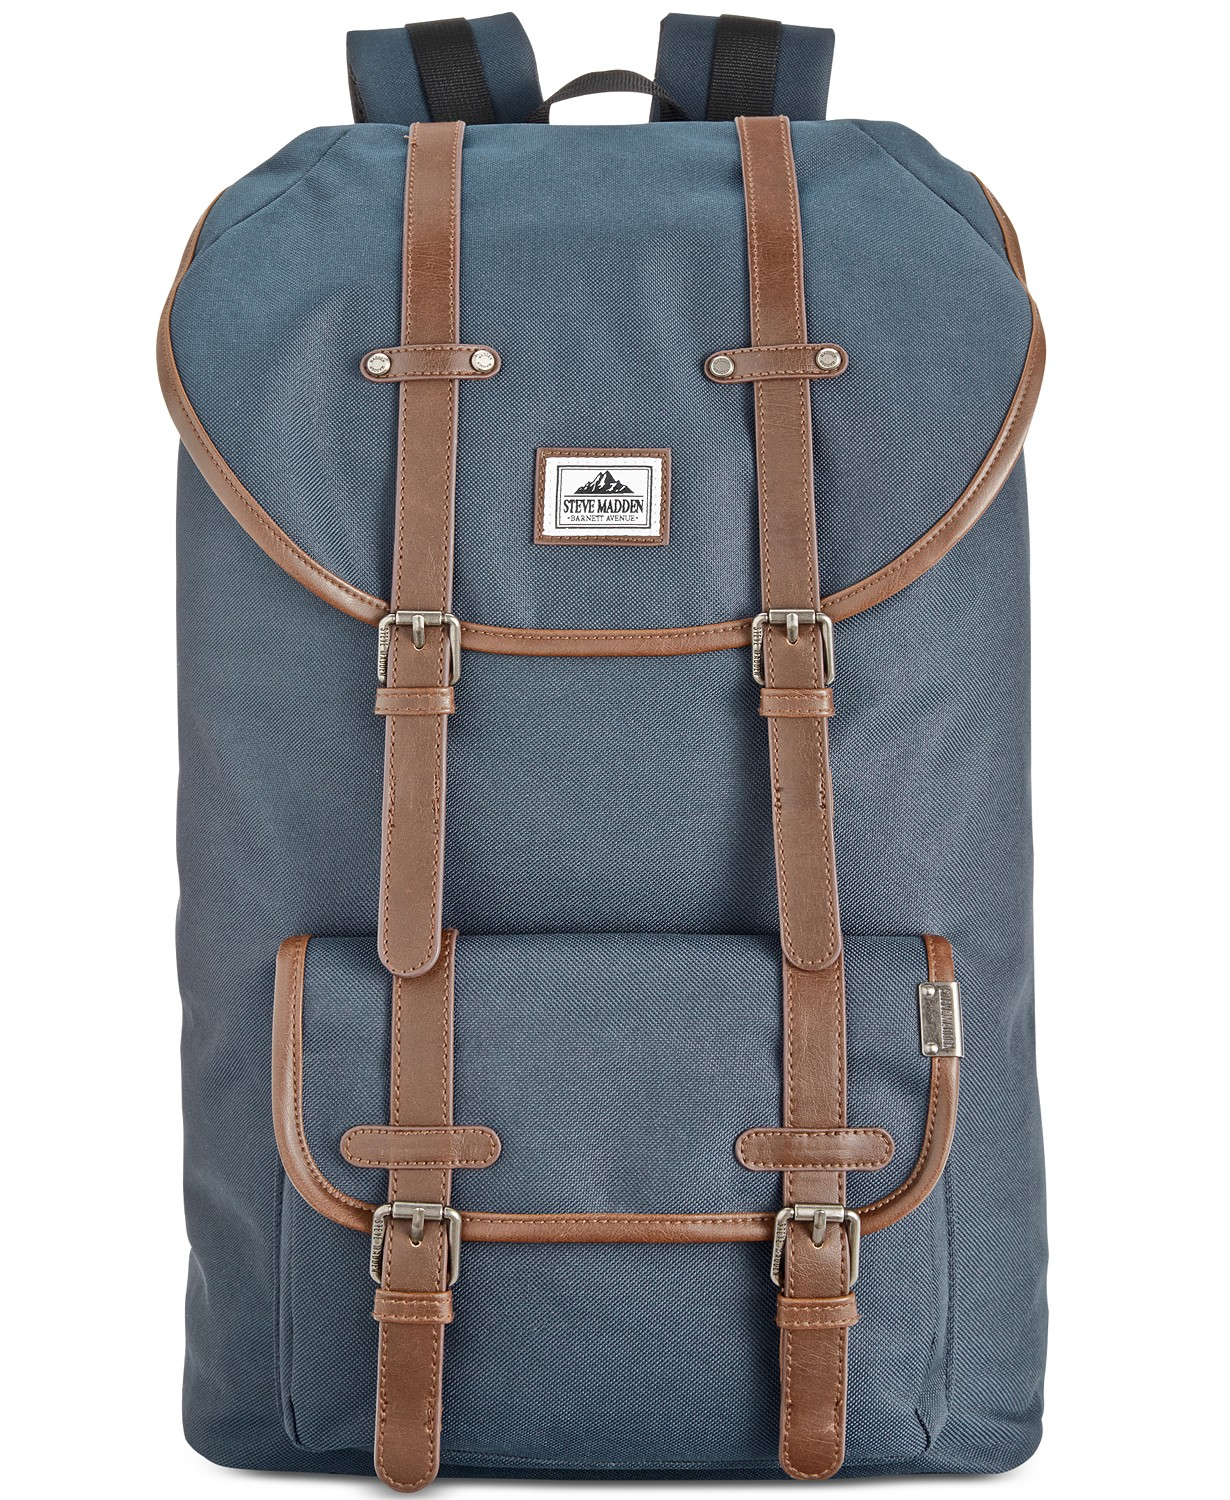 Steve Madden Men's Solid Utility Backpack